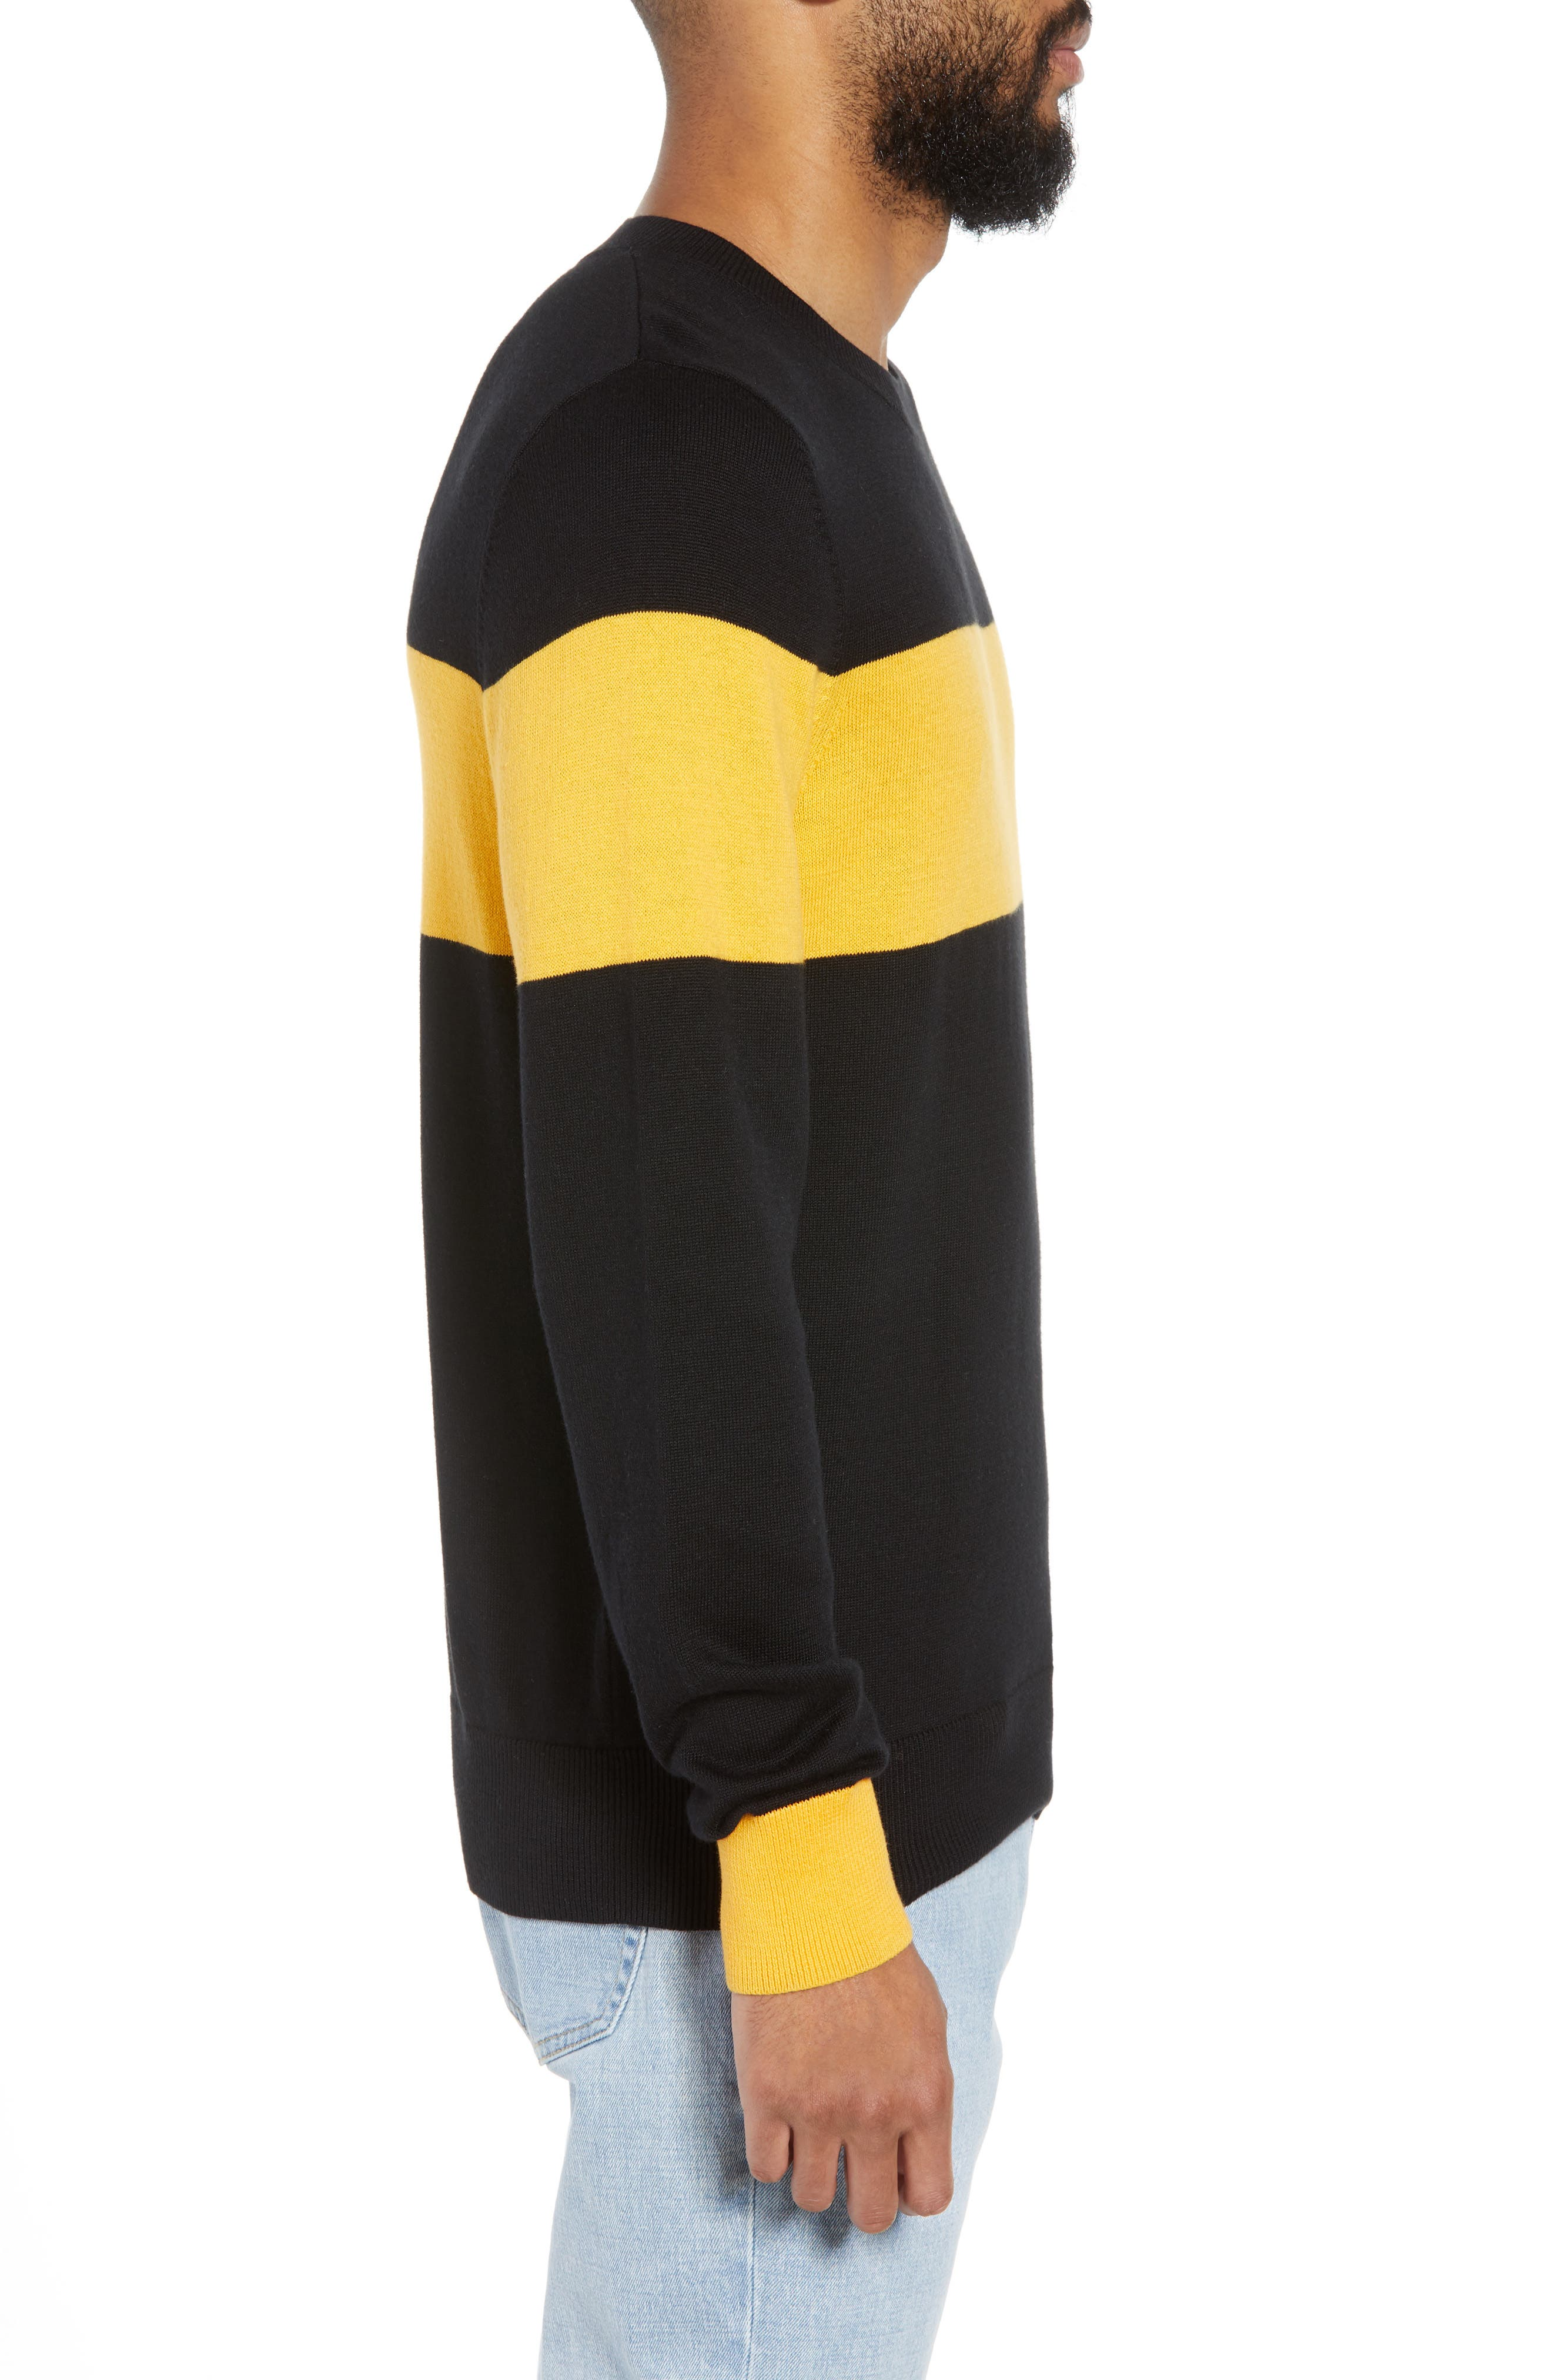 Rugby Stripe Sweater,                             Alternate thumbnail 3, color,                             BLACK YELLOW RUGBY STRIPE